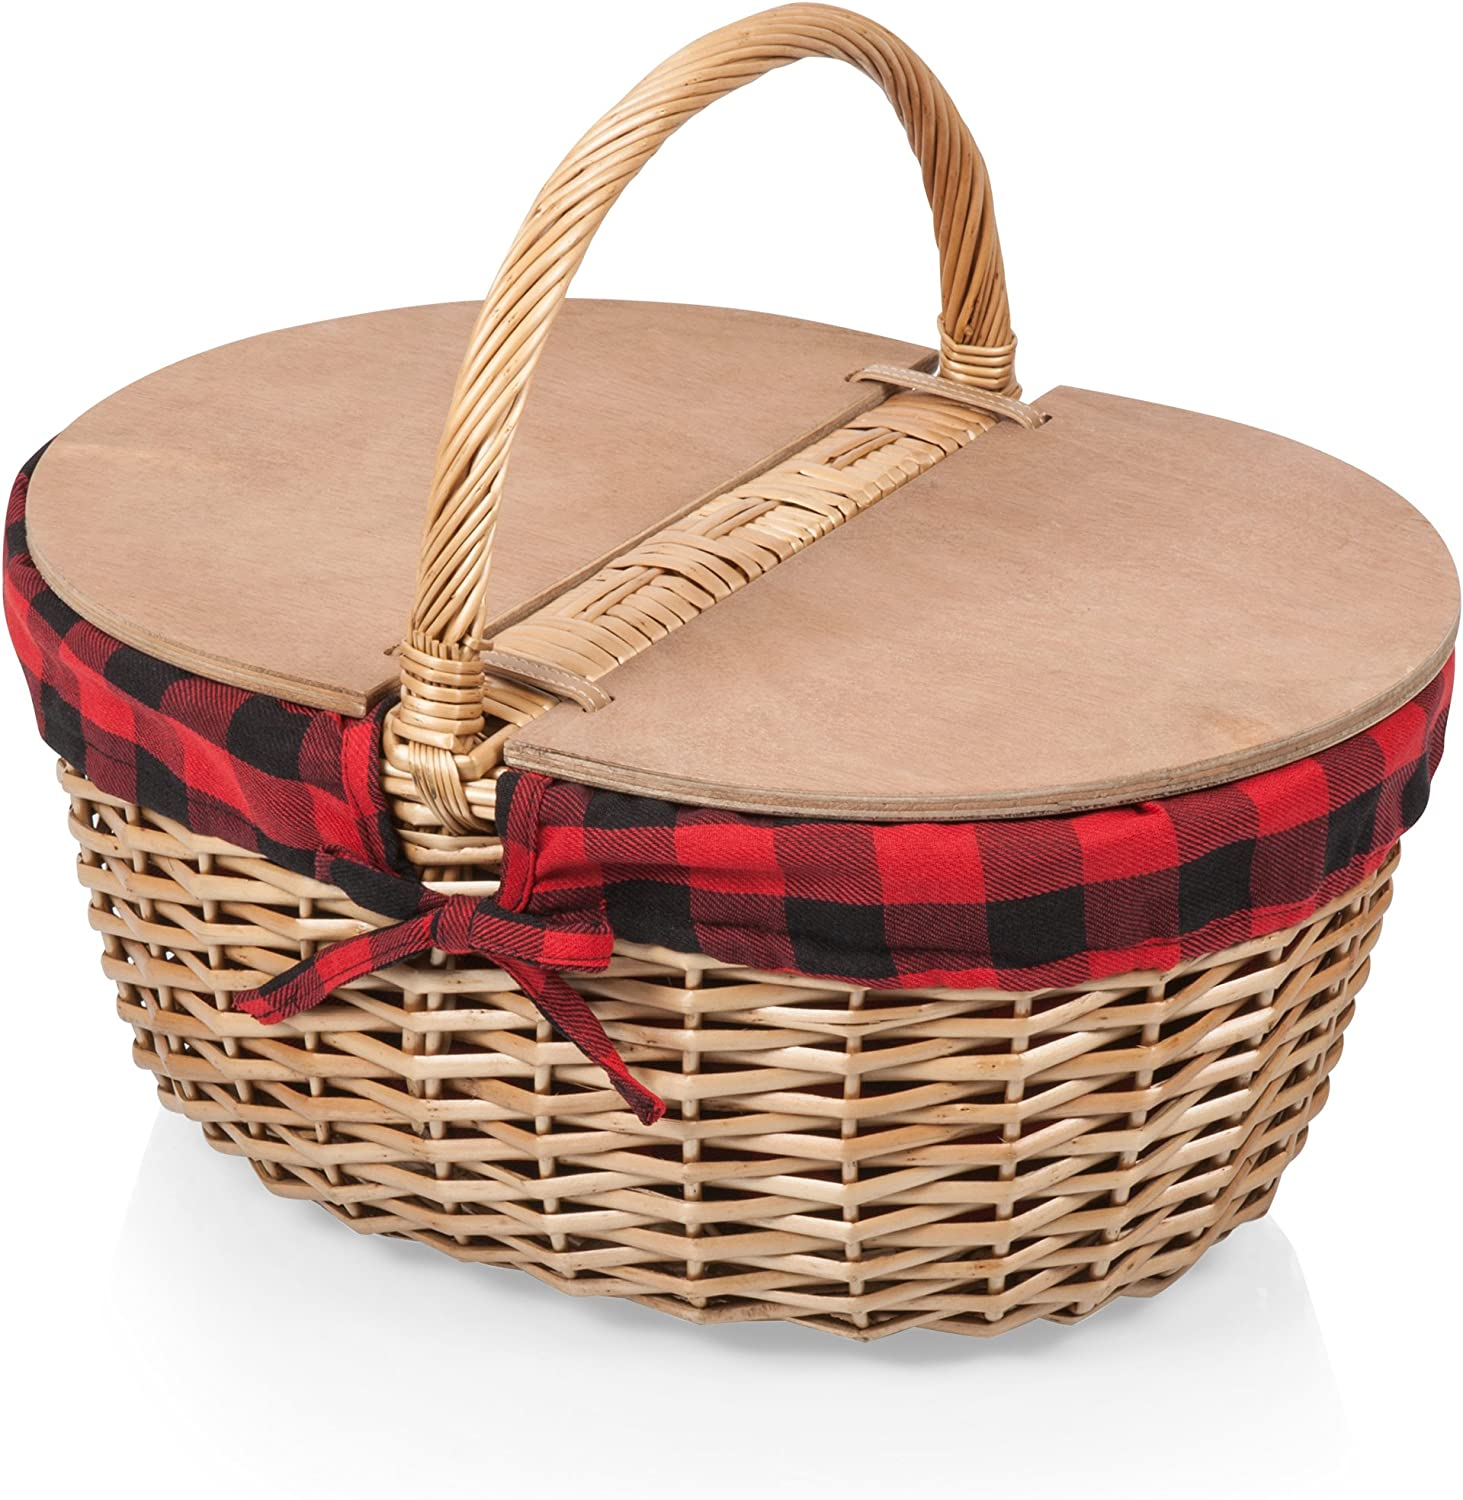 Picnic Time Country Picnic Basket with Liner, Red/Black Plaid